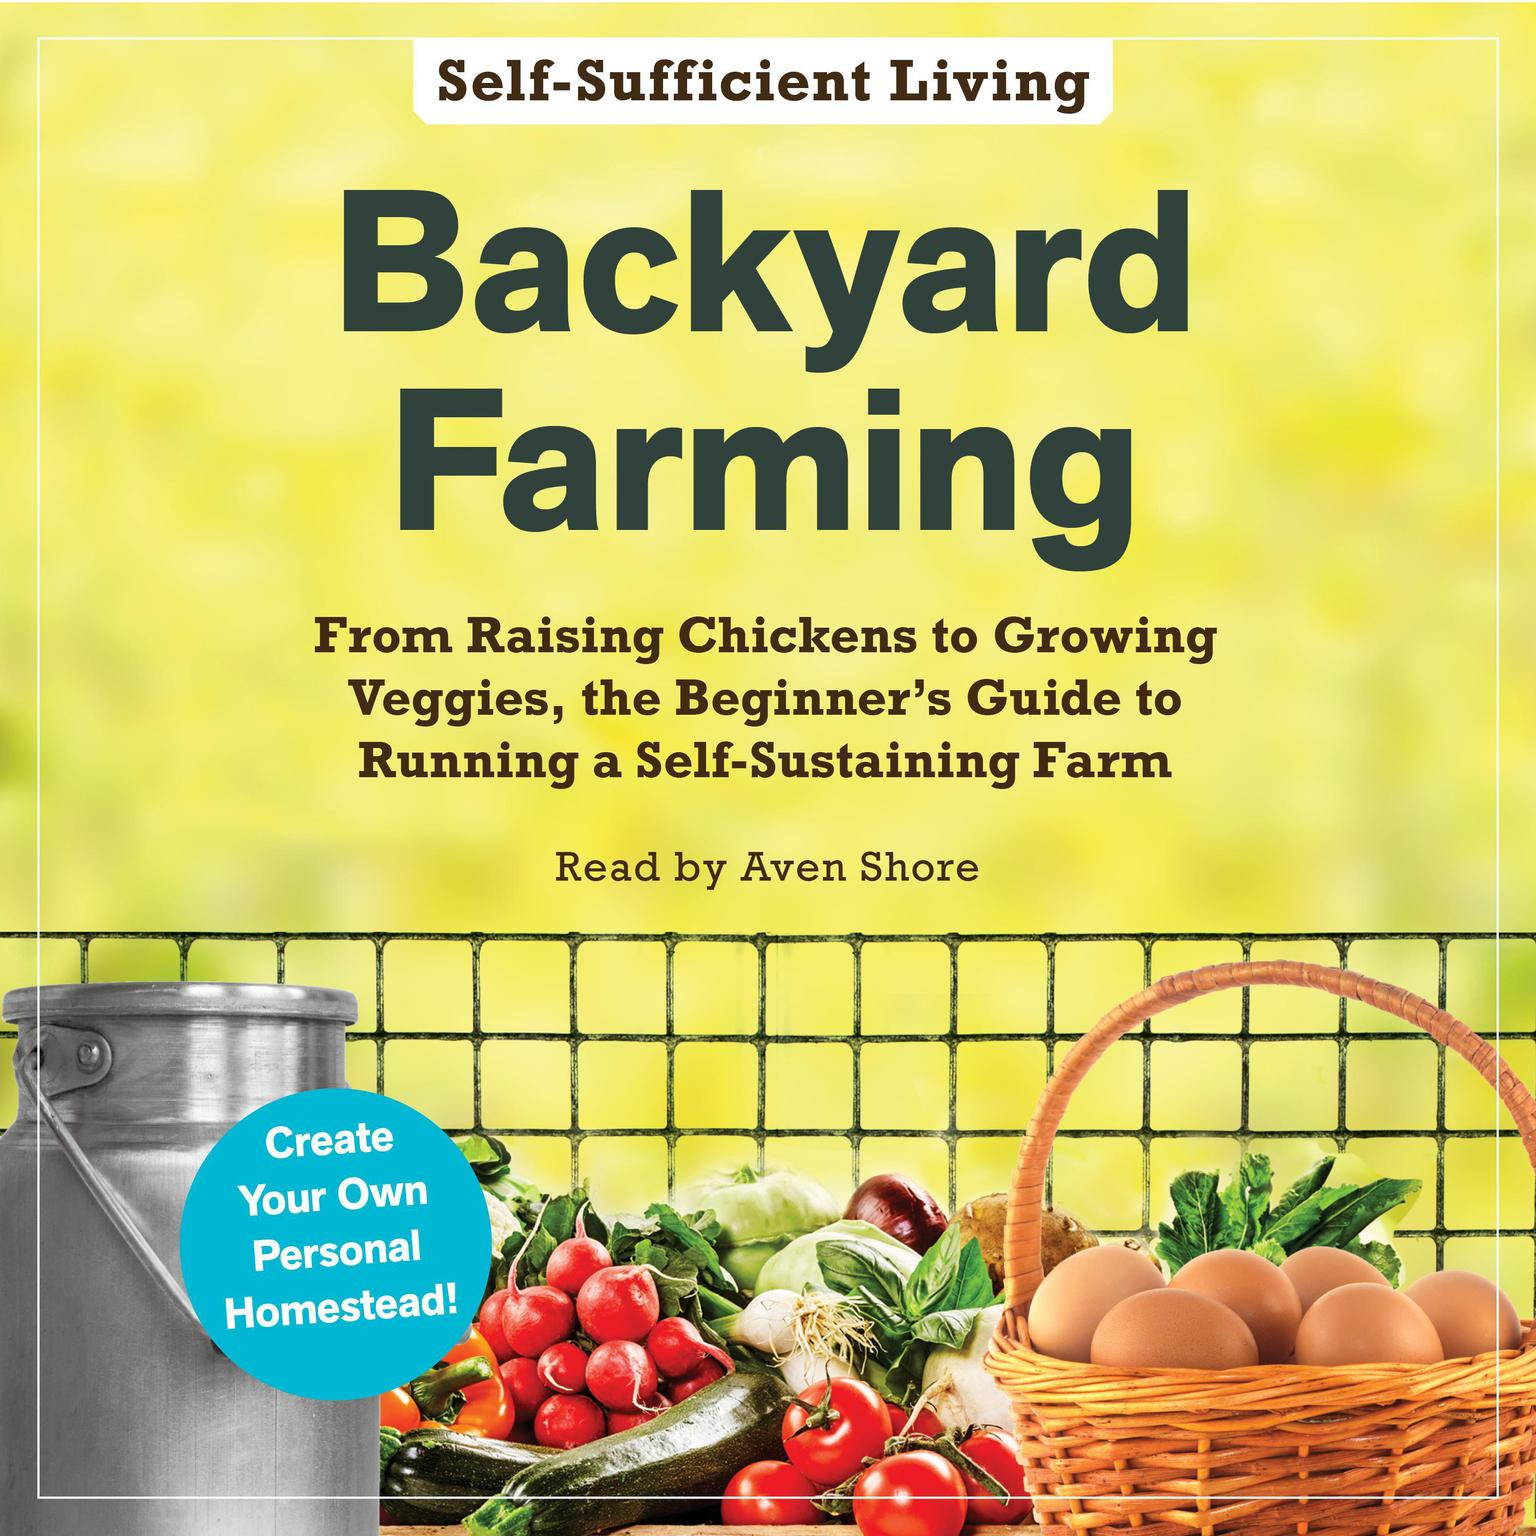 Backyard Farming: From Raising Chickens to Growing Veggies, the Beginners Guide to Running a Self-Sustaining Farm Audiobook, by Adams Media